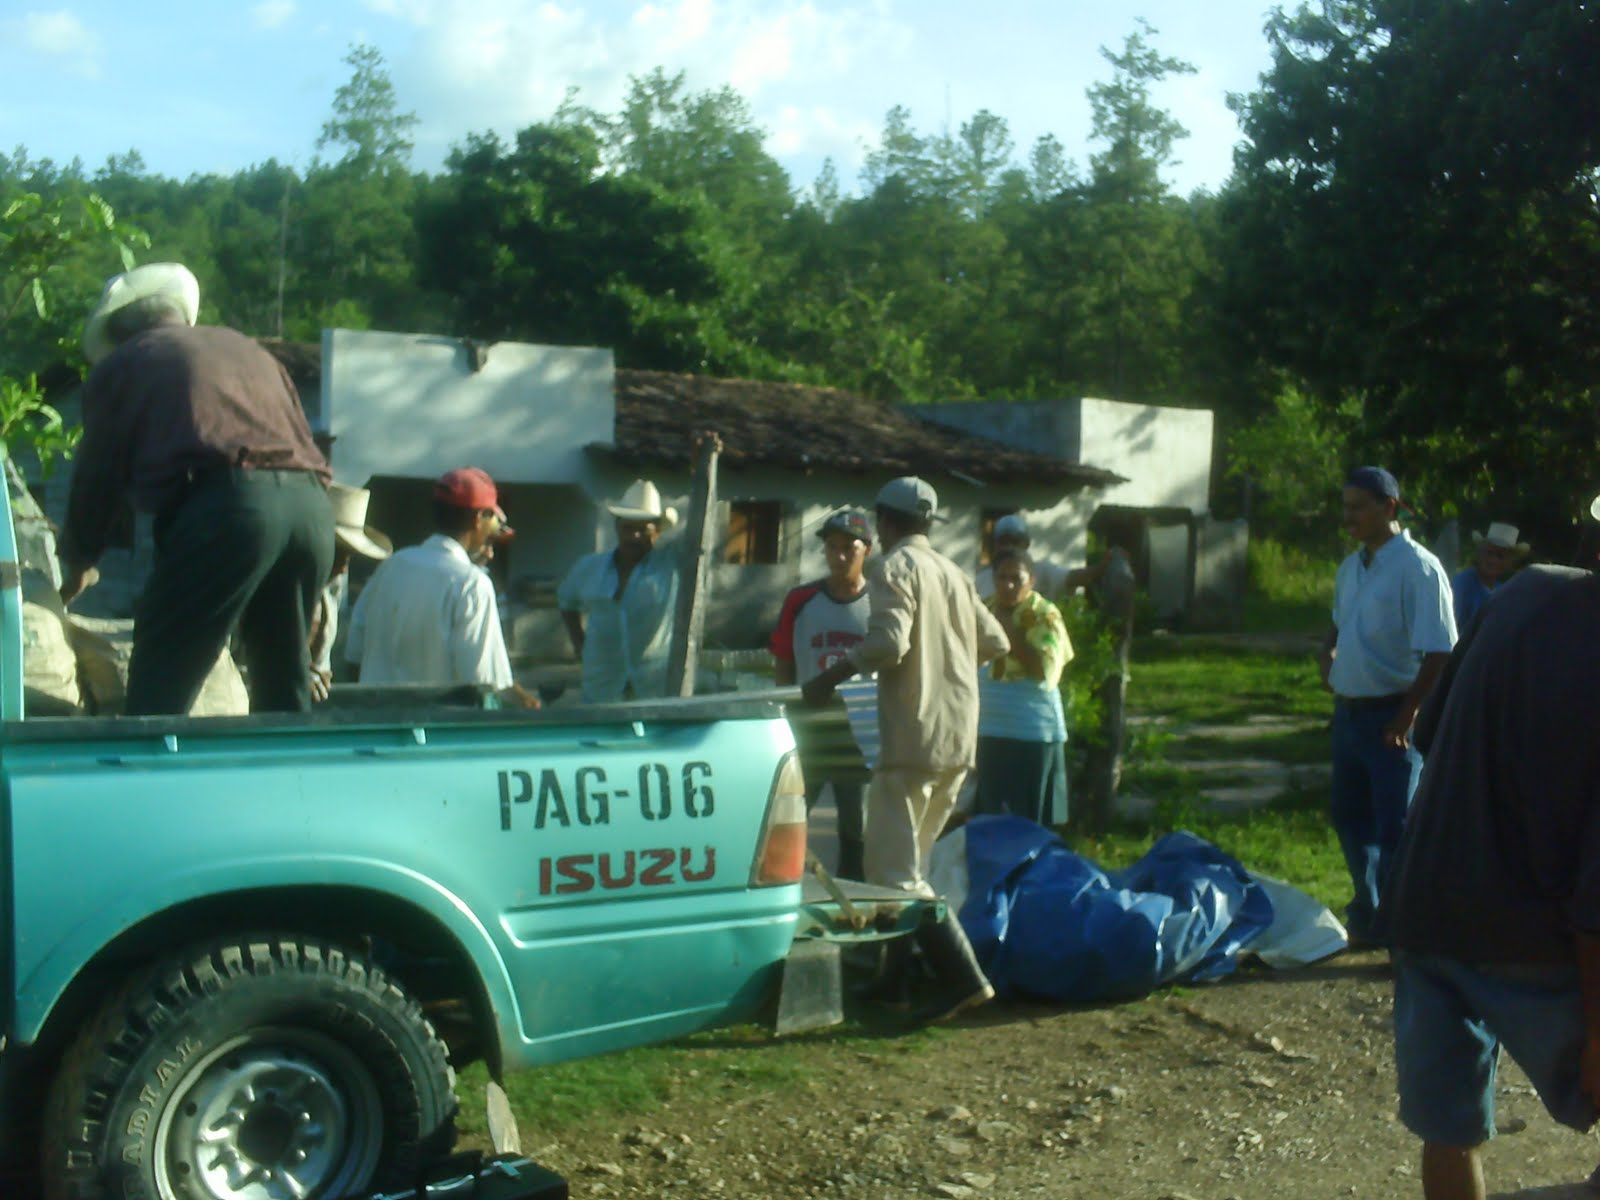 Delivering supplies to a rural village so that they can construct ...